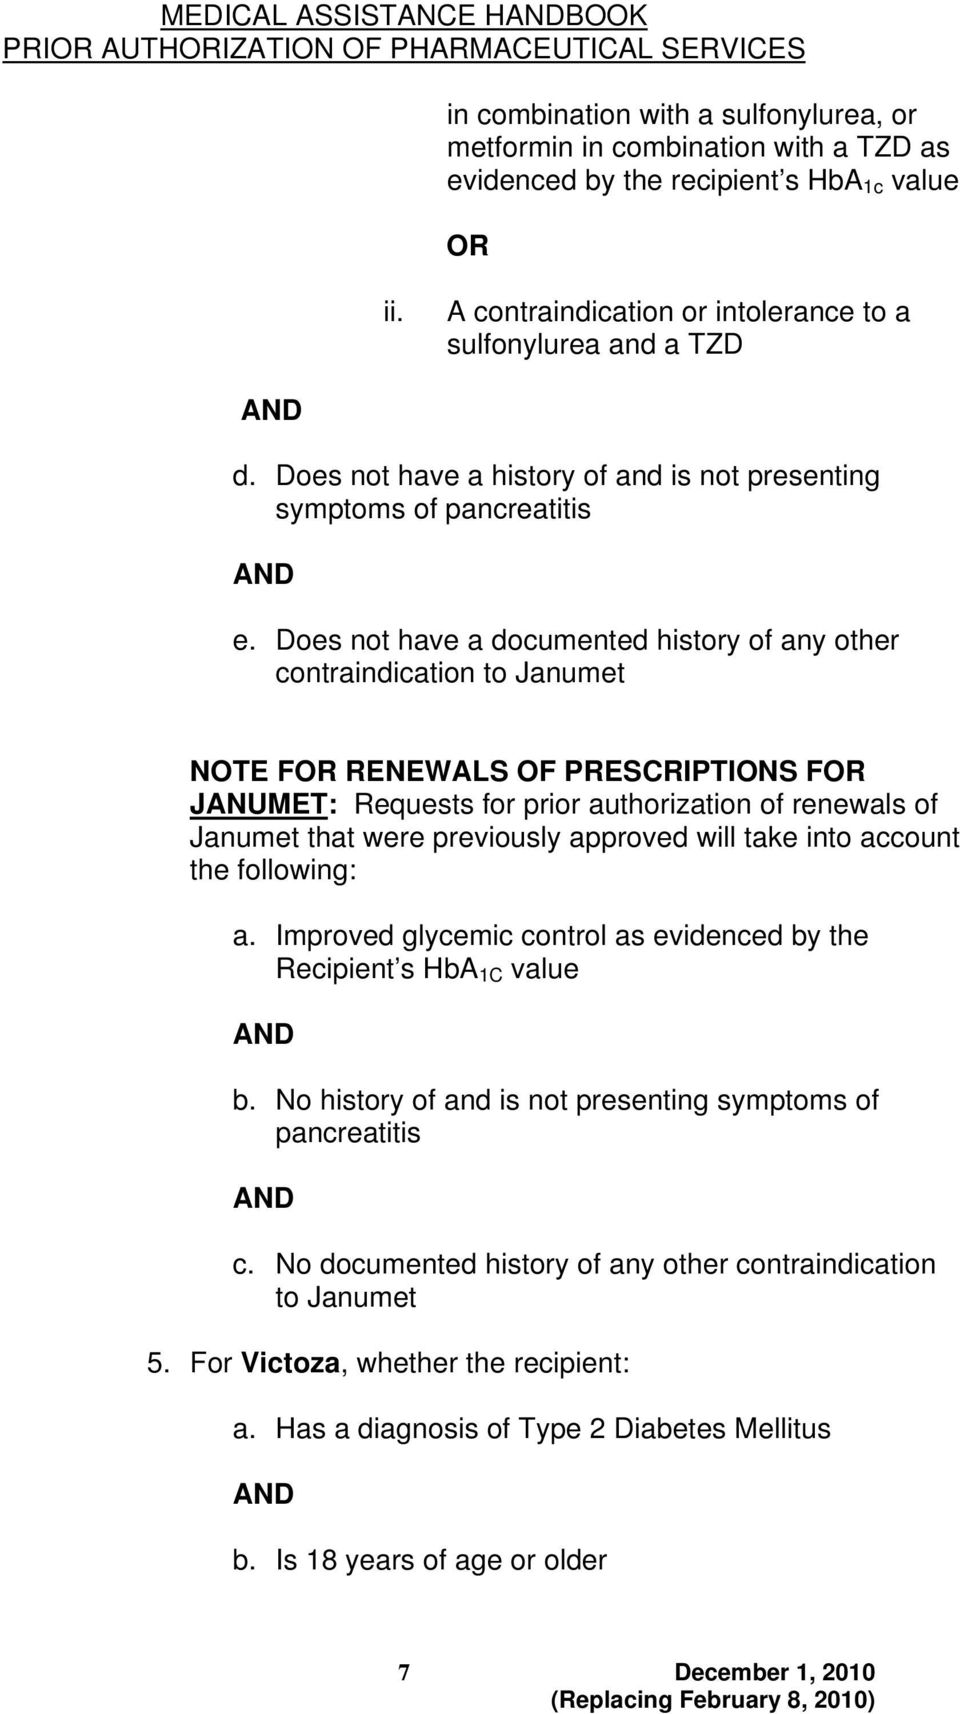 Does not have a documented history of any other contraindication to Janumet NOTE F RENEWALS OF PRESCRIPTIONS F JANUMET: Requests for prior authorization of renewals of Janumet that were previously